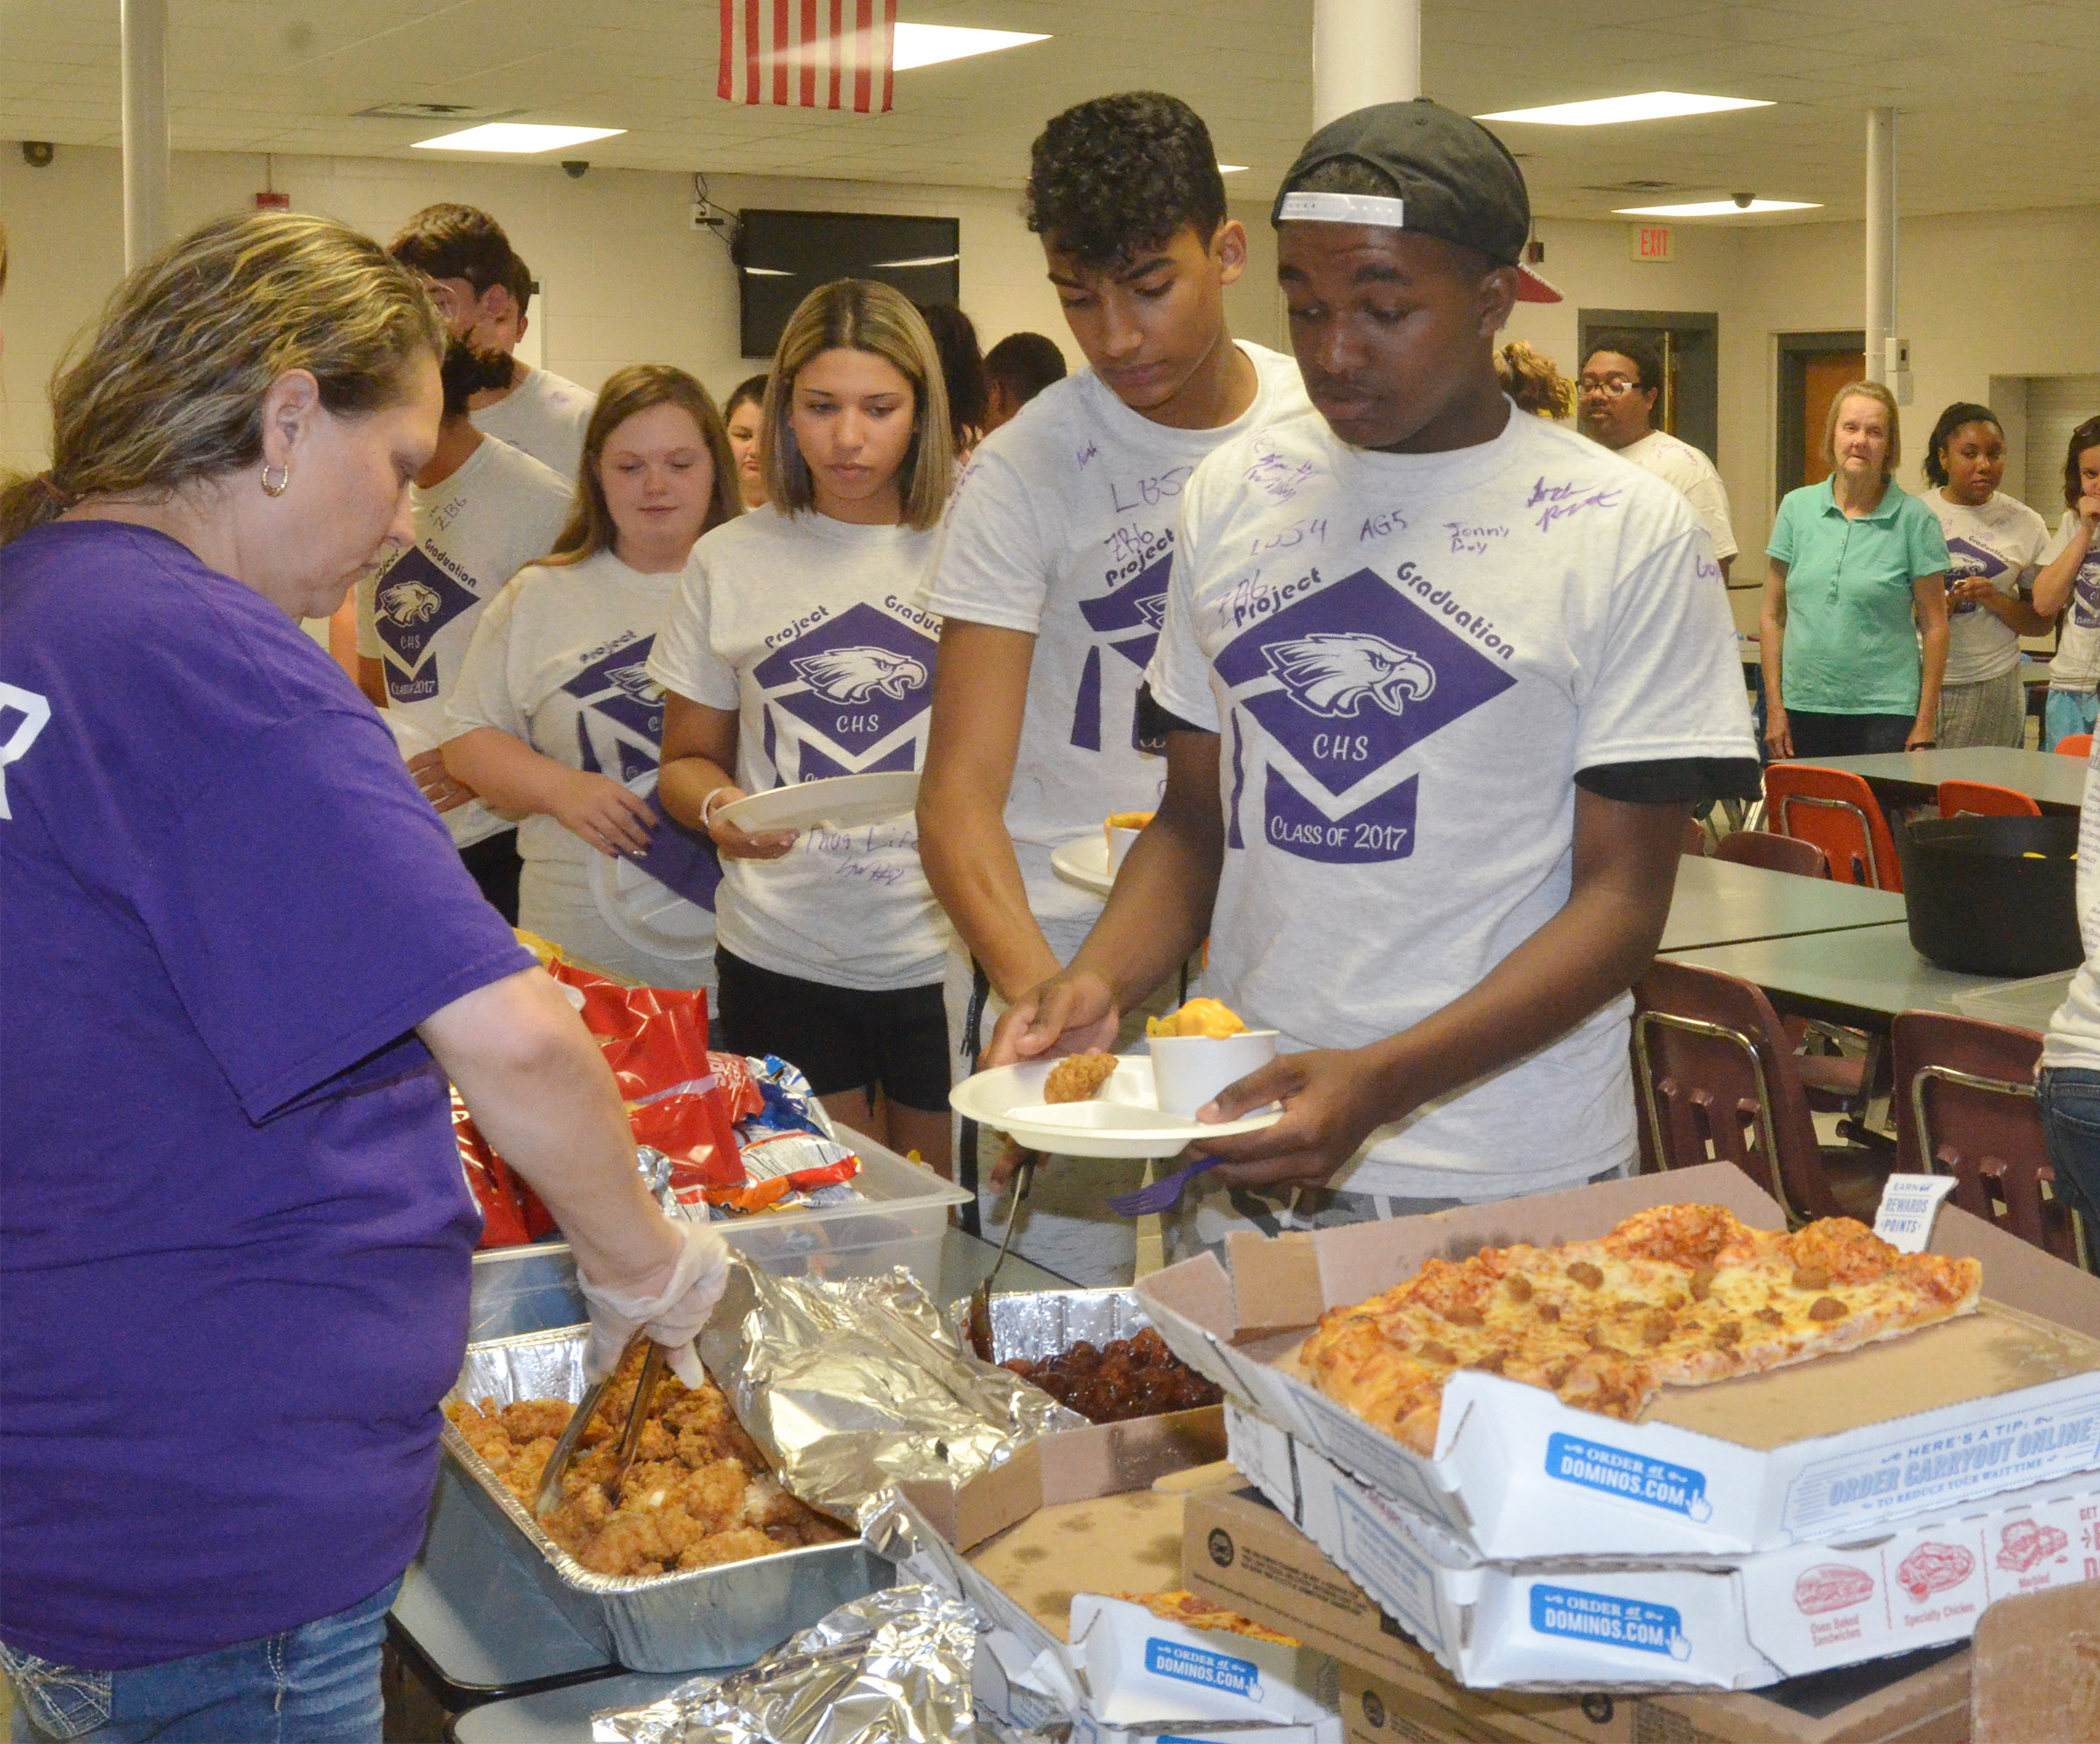 CHS seniors enjoy food donated from local restaurants.